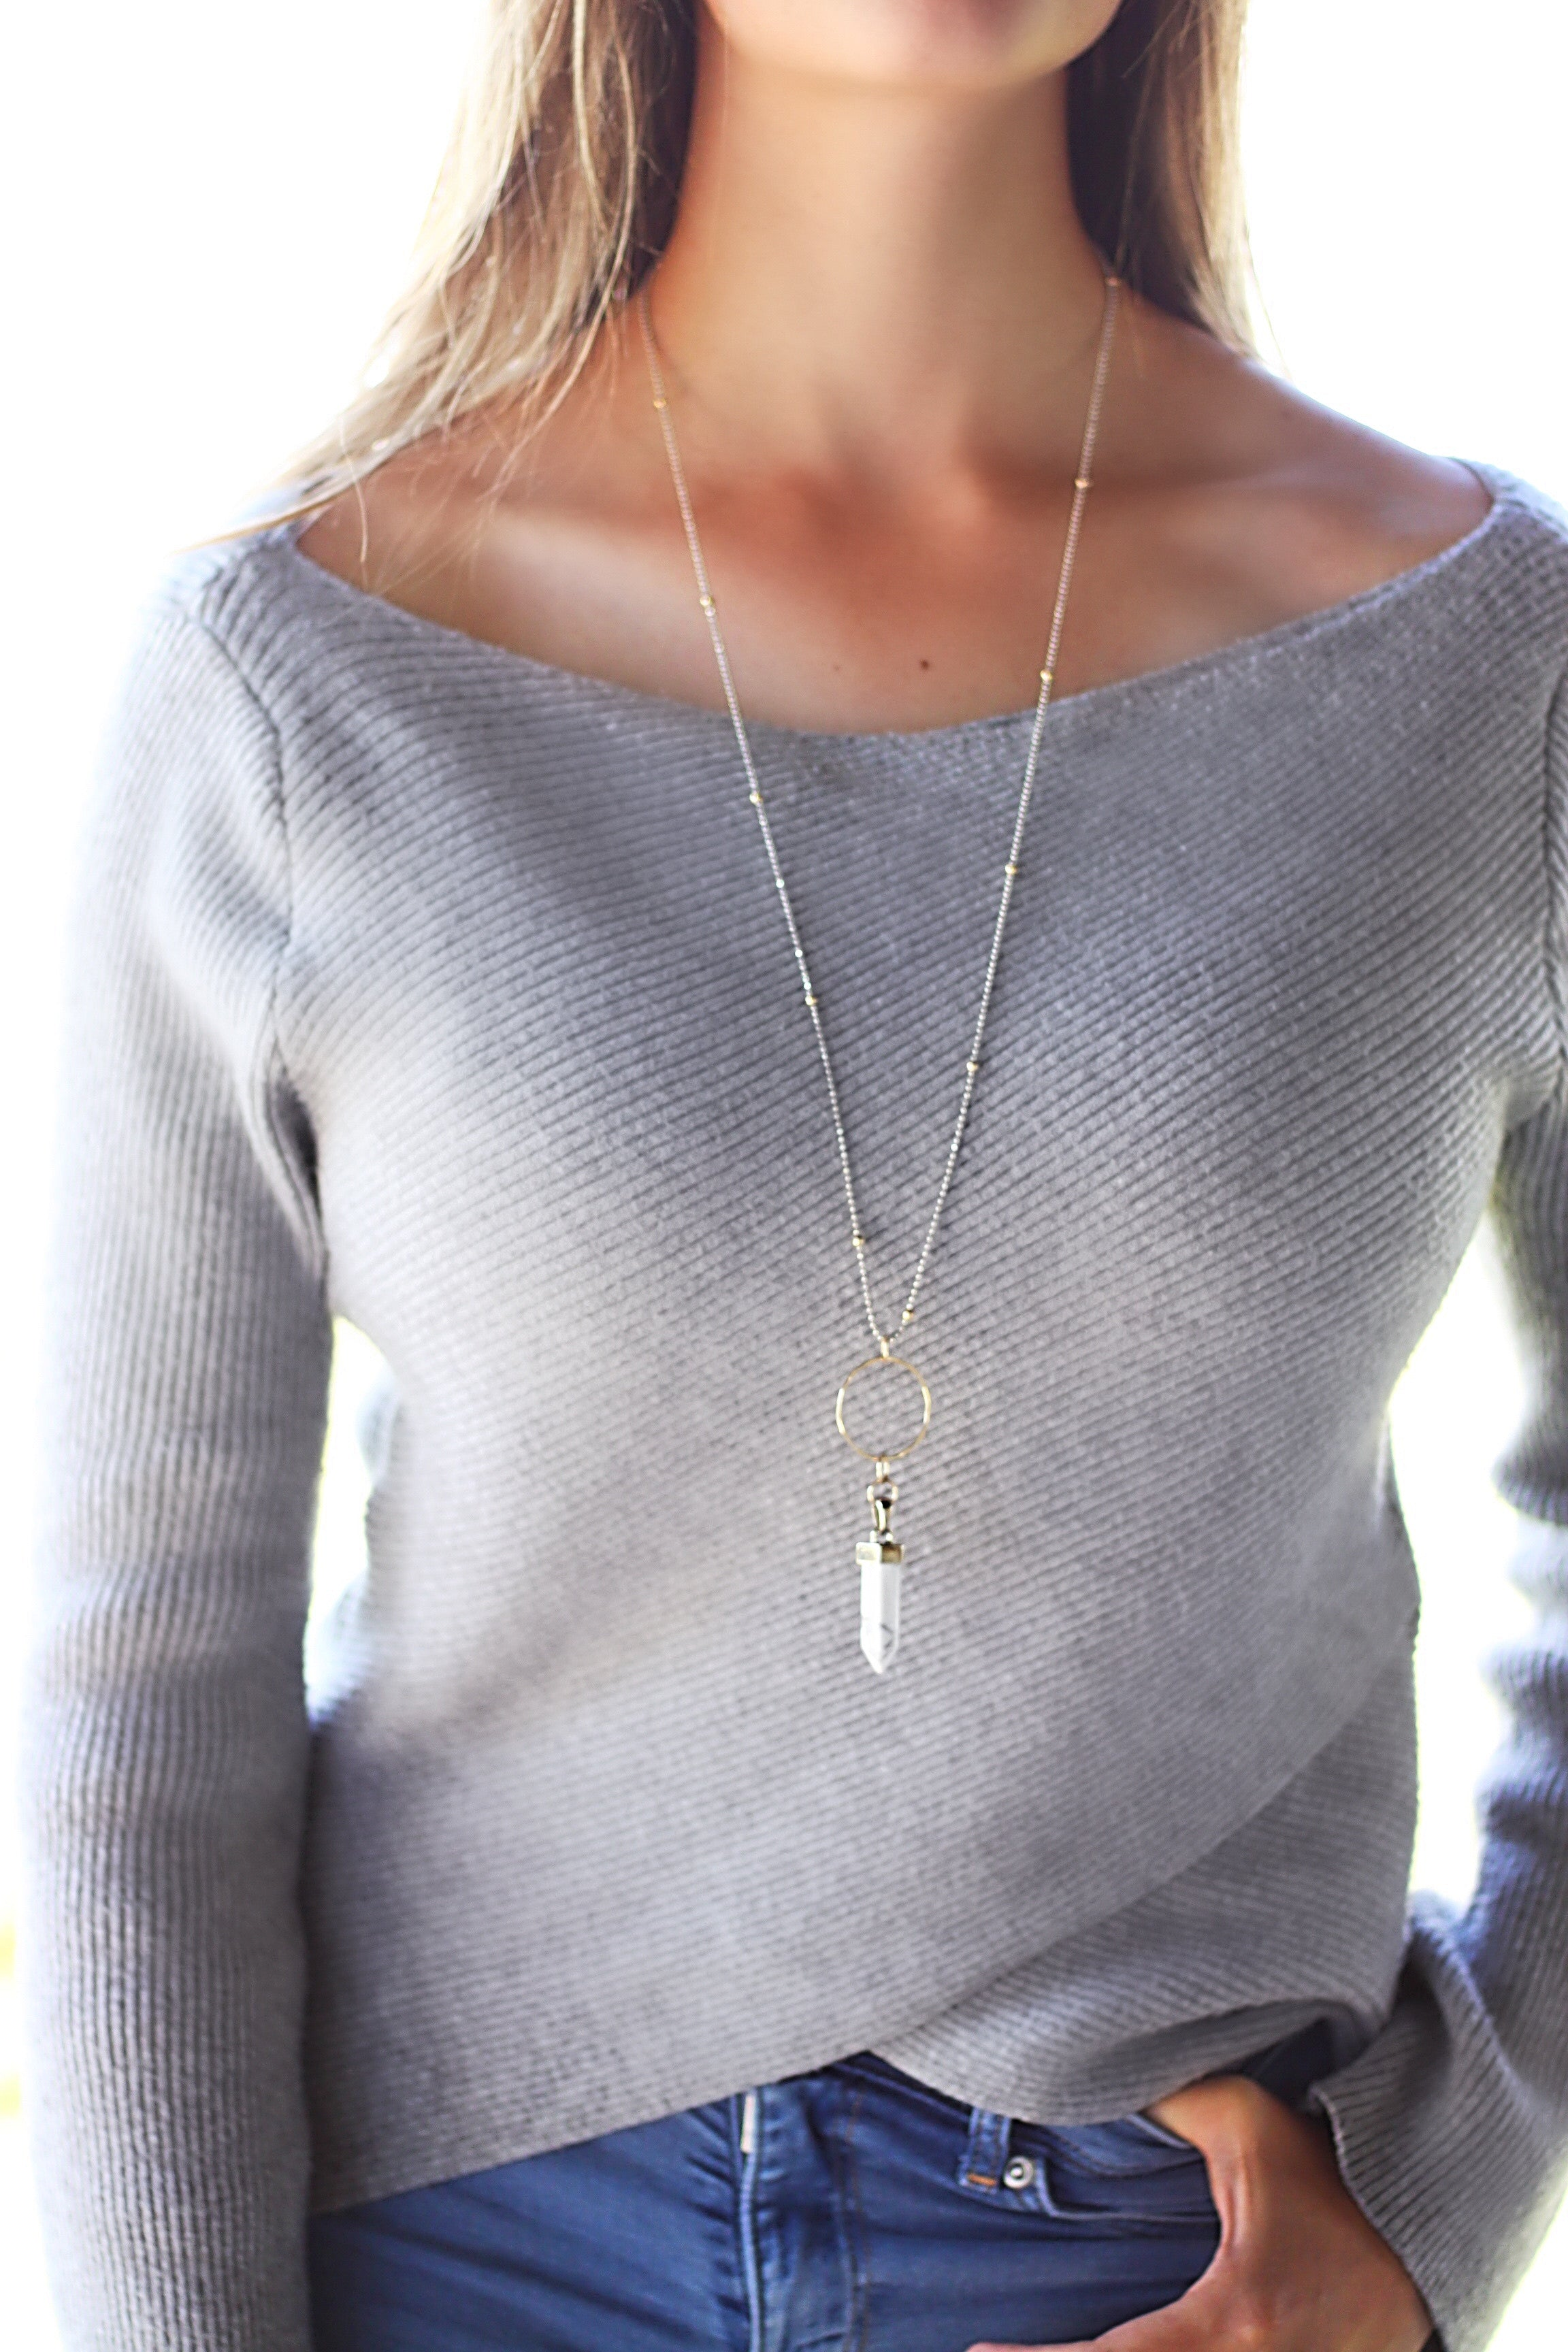 'Stand Tall' Necklace